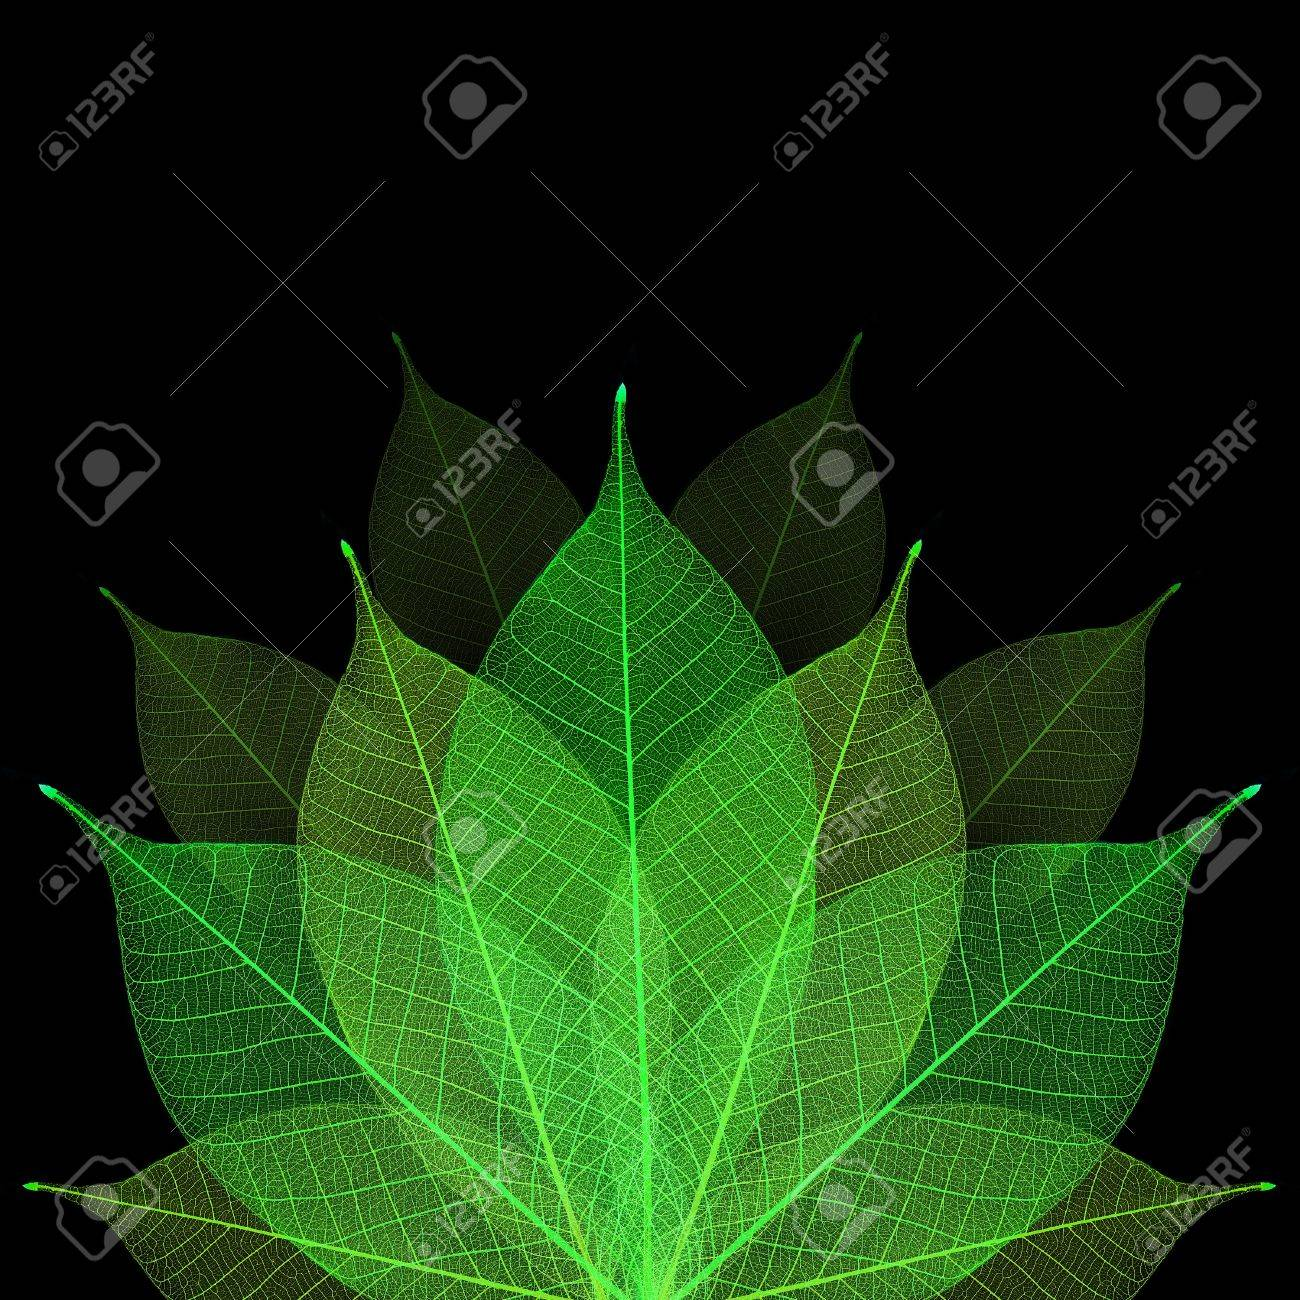 Skeleton leaf abstract background Stock Photo - 14809368